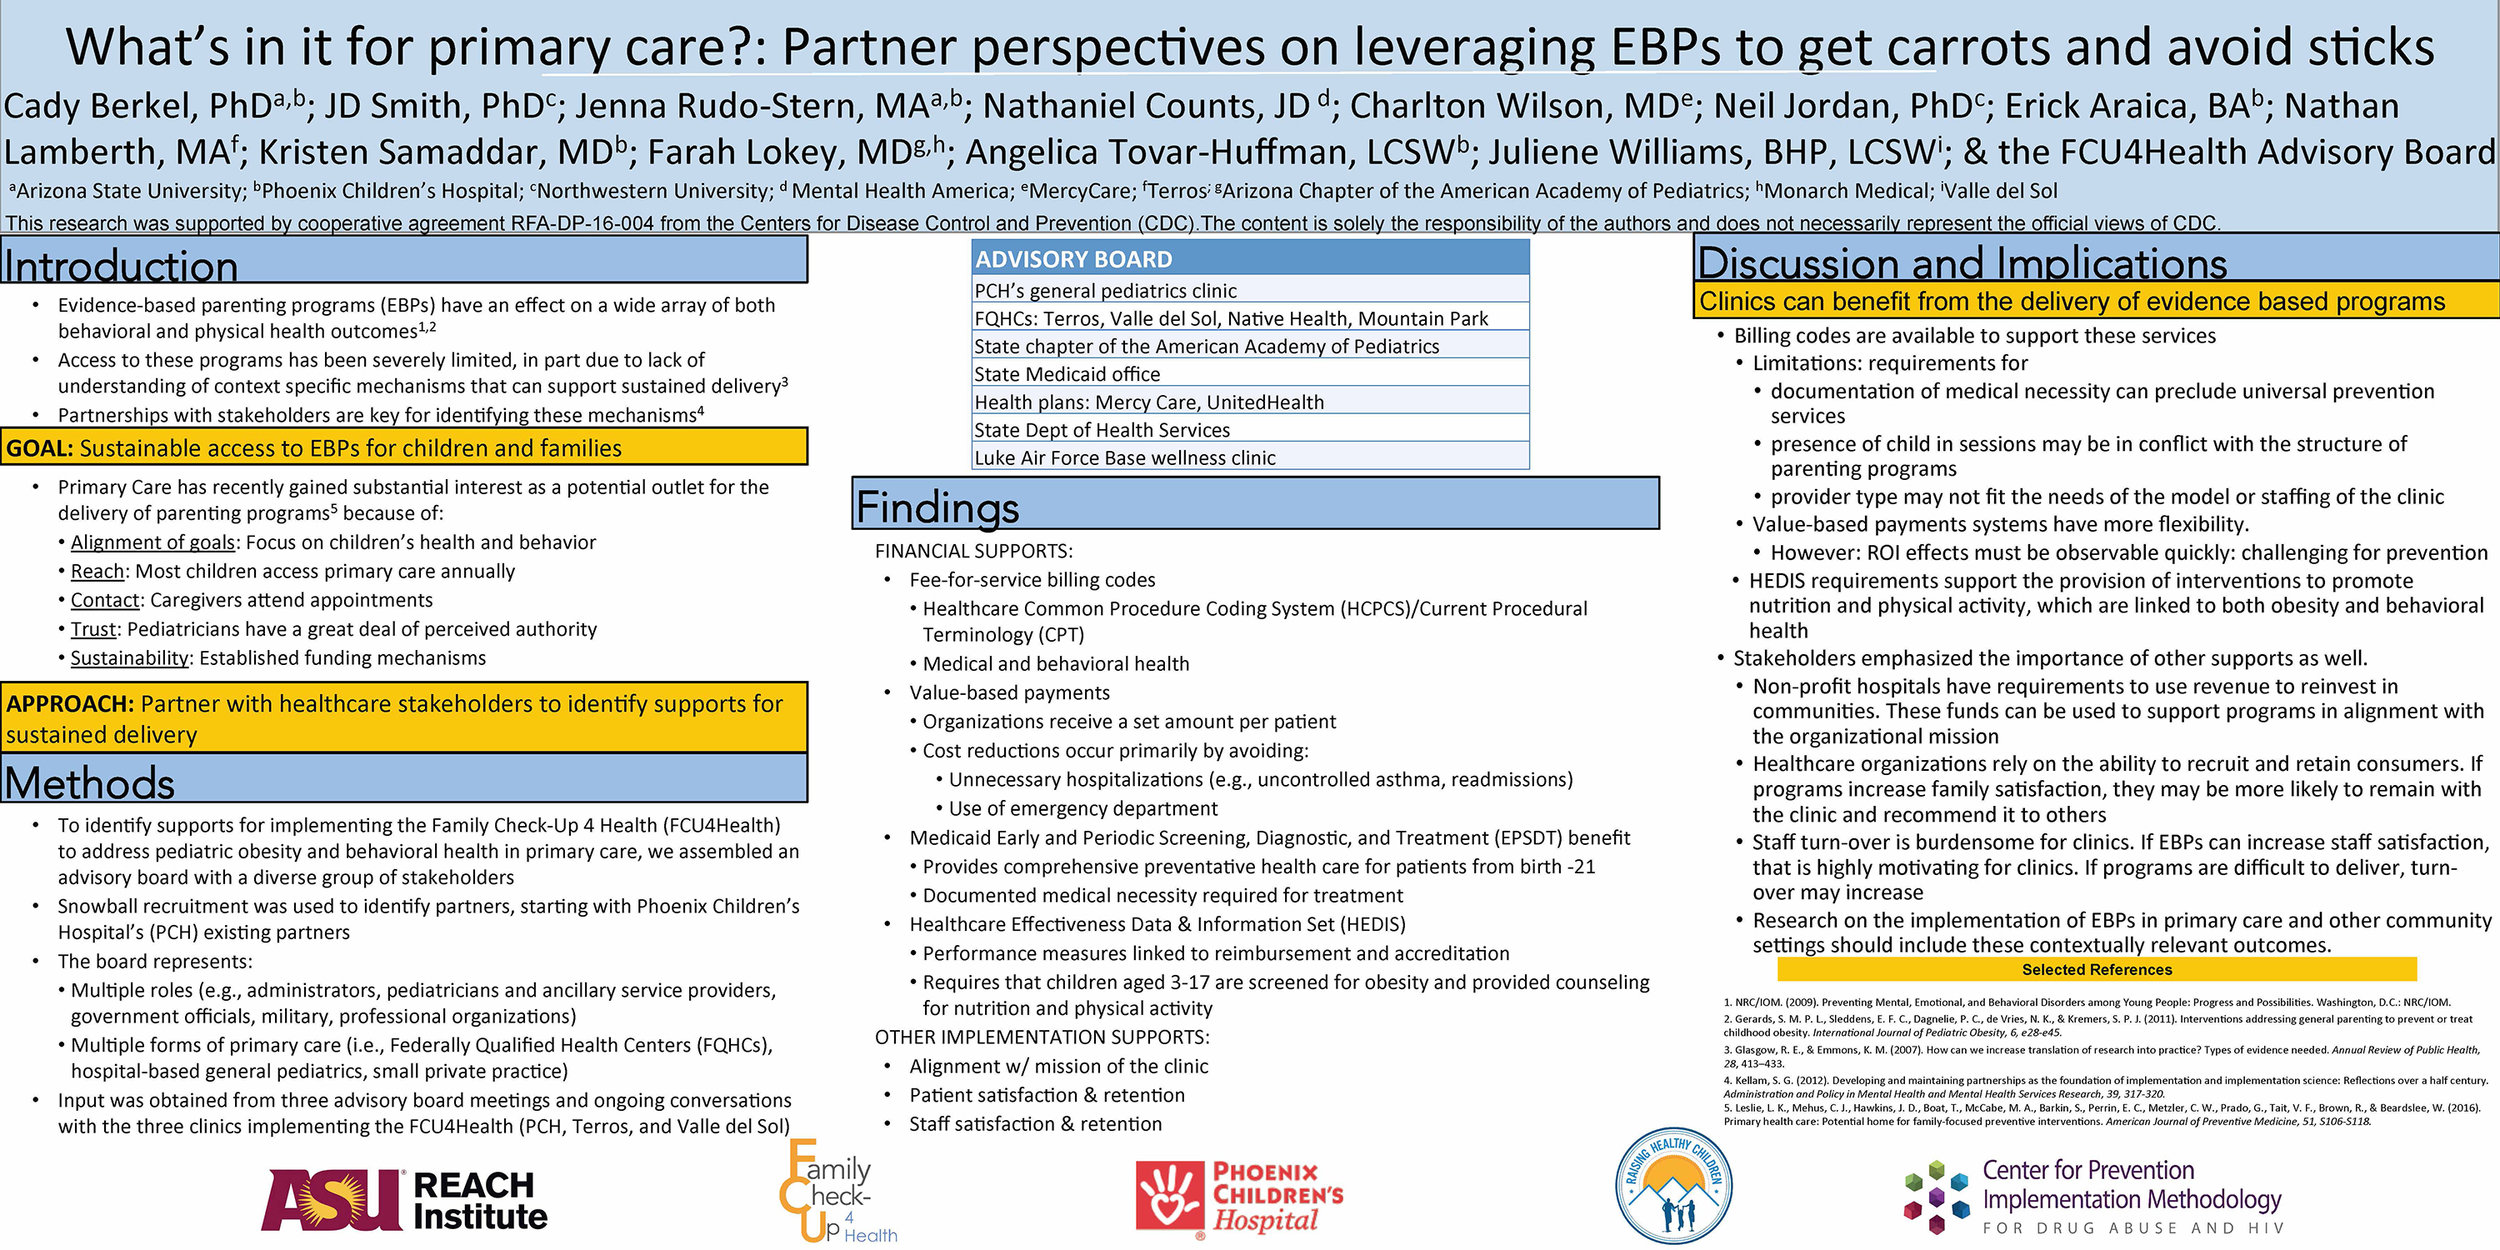 Whats in it for primary care 5.22.18.jpg